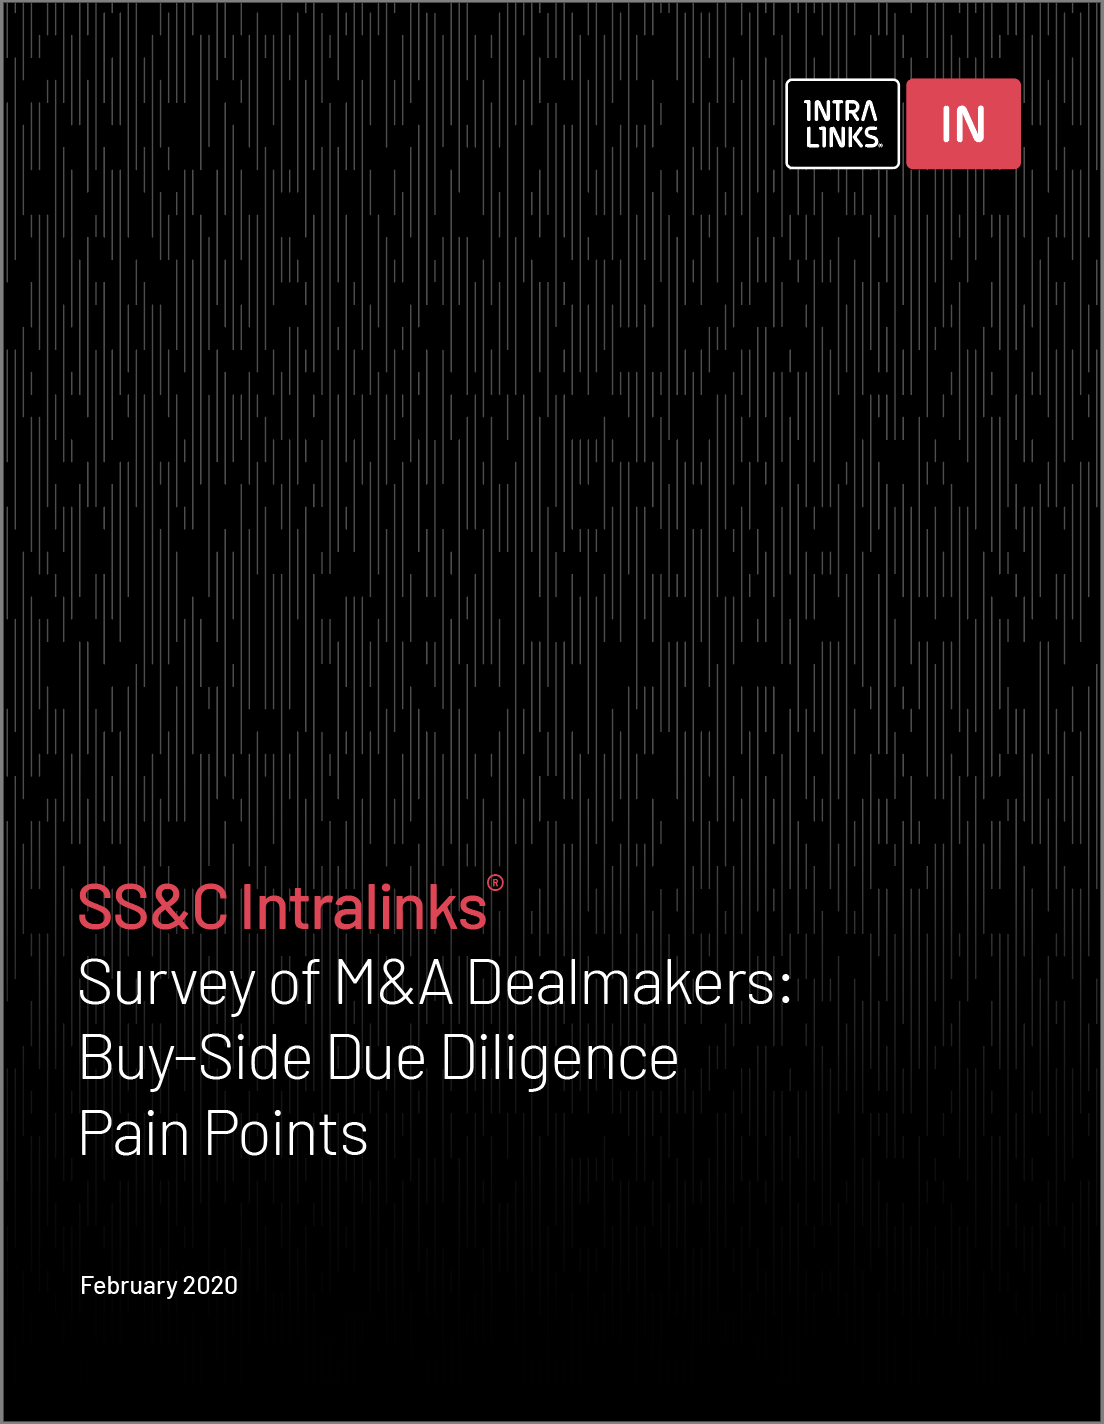 SS&C Intralinks® Survey of M&A Dealmakers: Buy-Side Due Diligence Pain Points